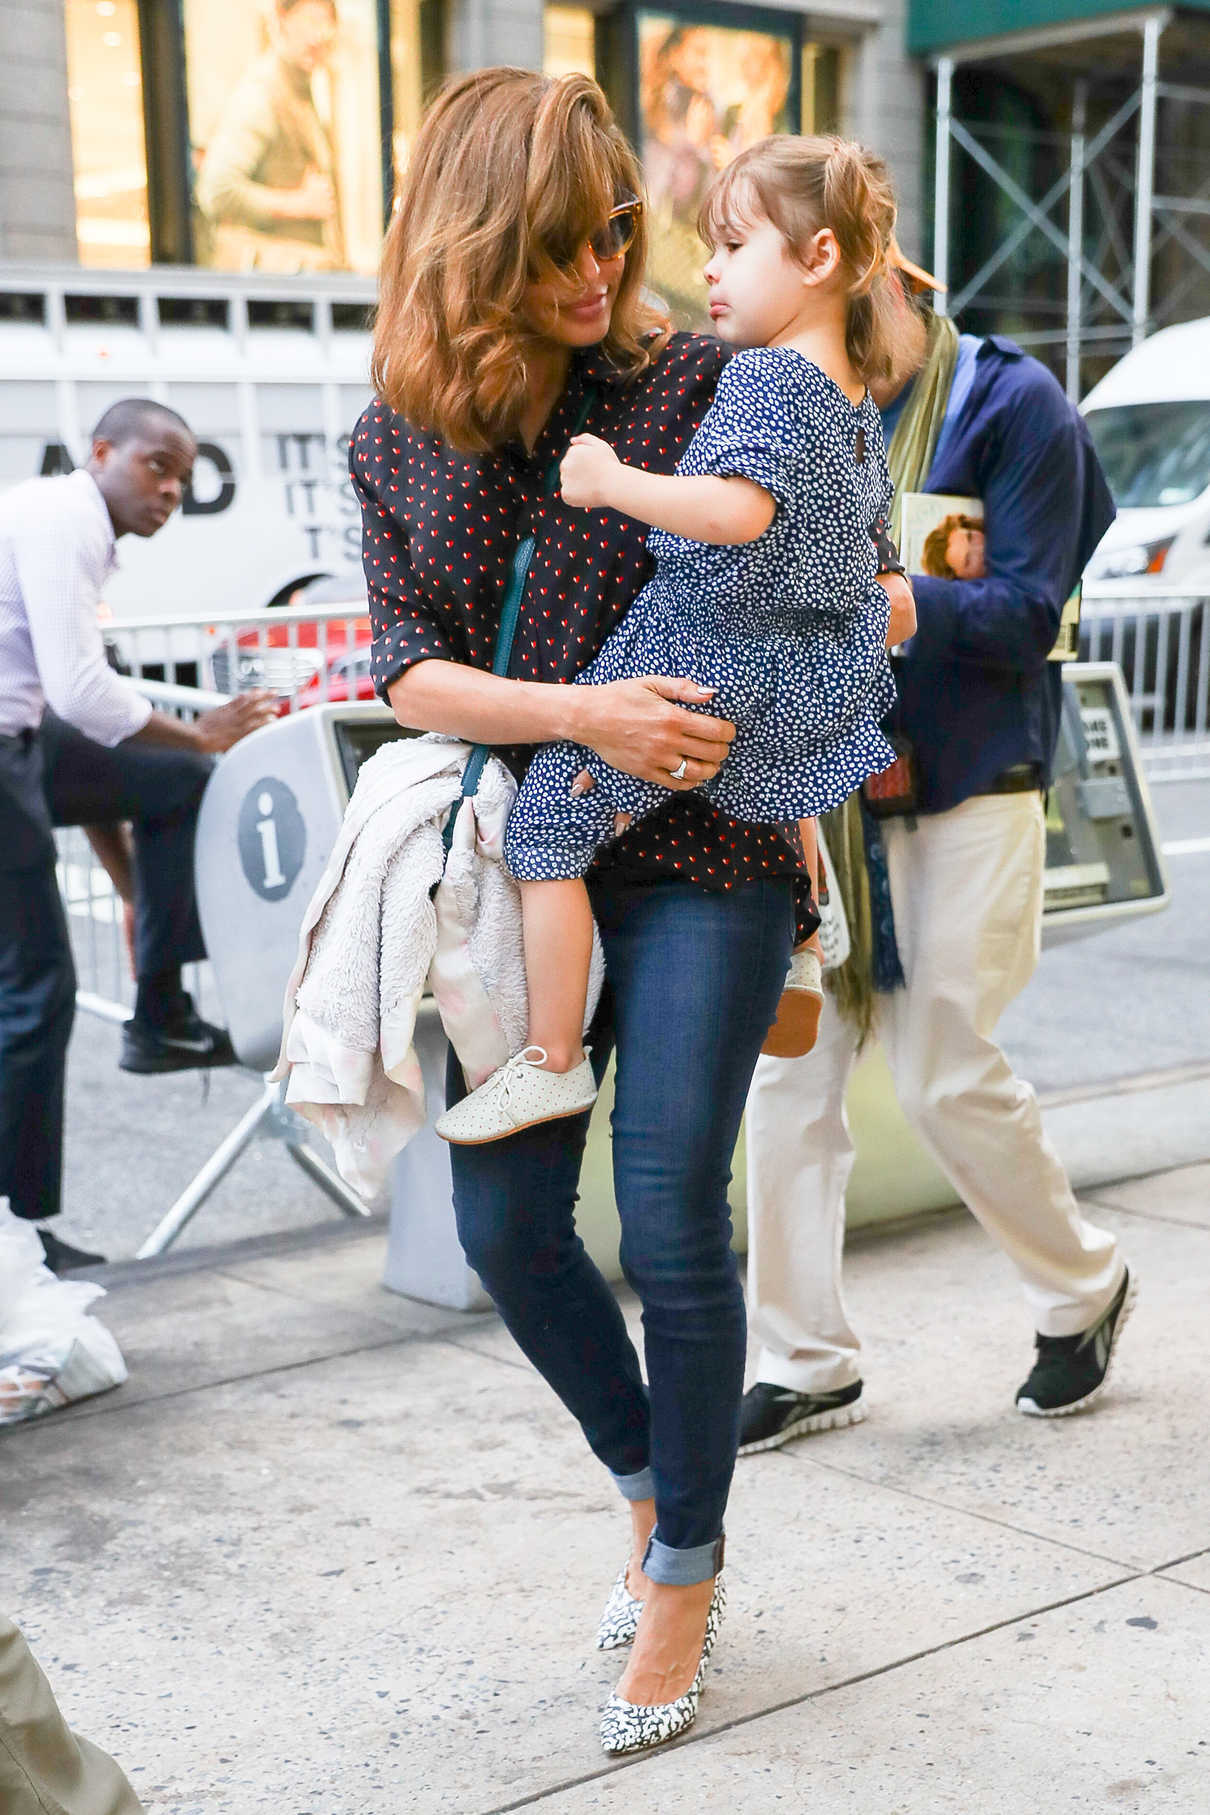 Eva Mendes Was Seen With Her Daughter Esmeralda On Madison Avenue In New York City 09 26 2017 5